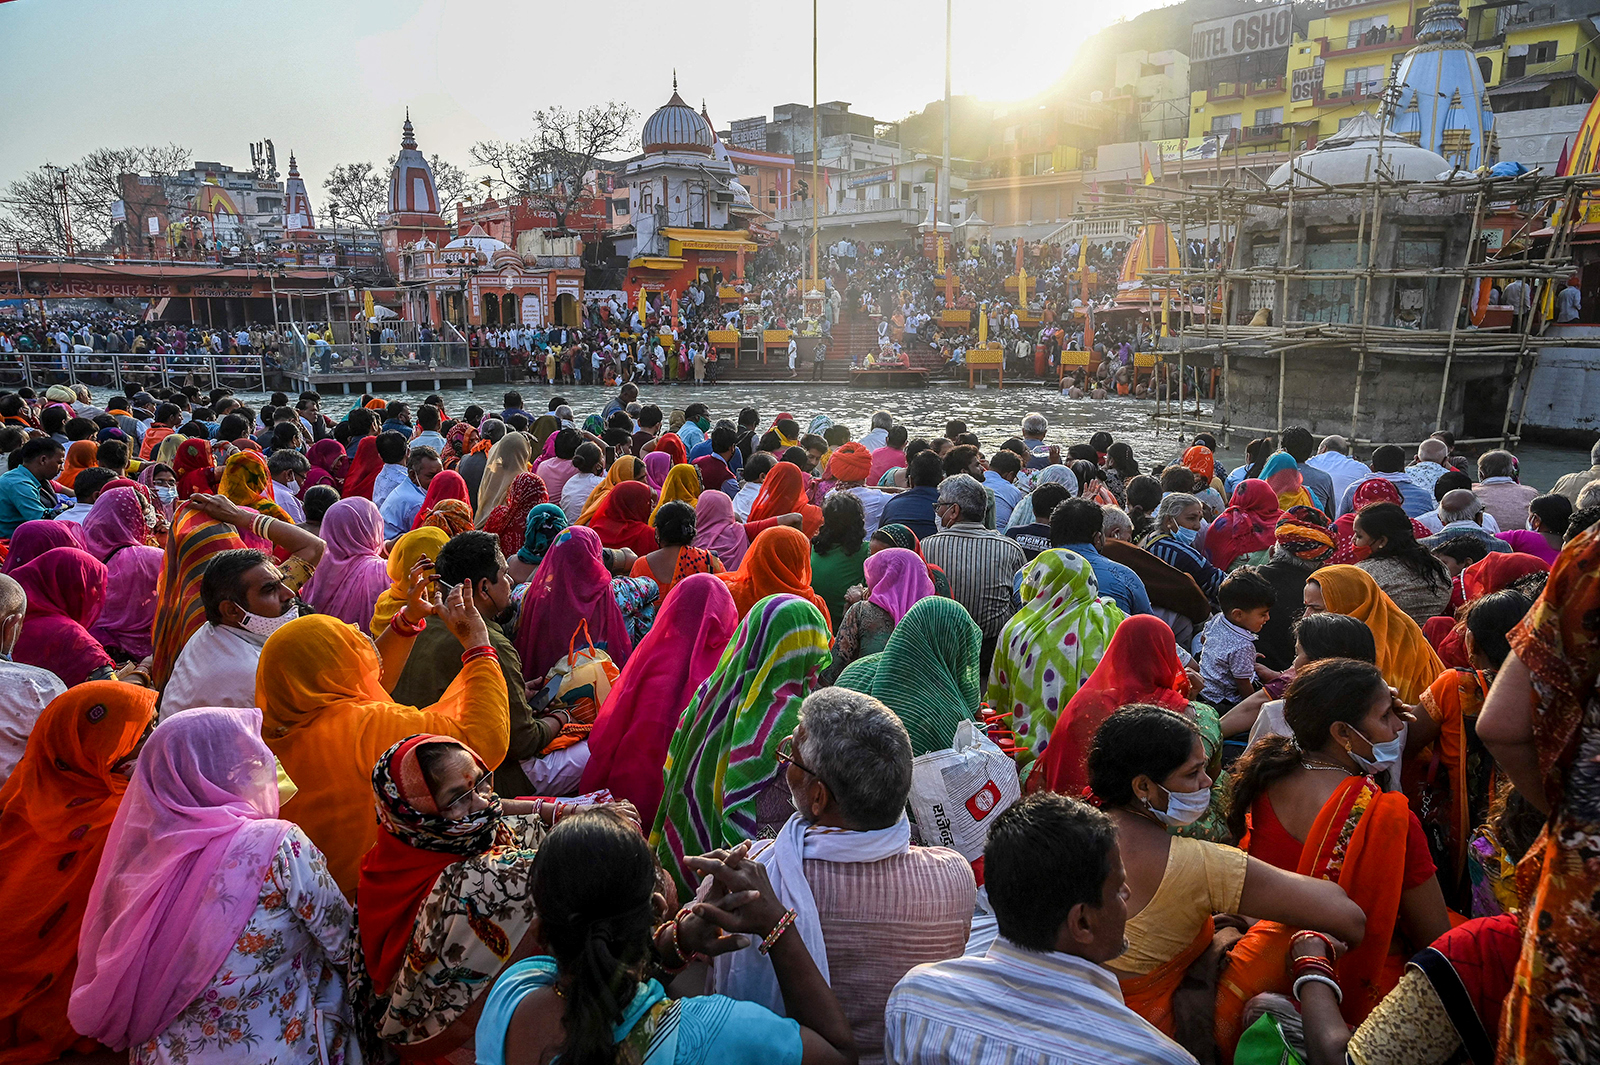 Hindu devotees gather for evening prayers after taking a holy dip in the waters of the River Ganges on the eve of Shahi Snan (grand bath) on Maha Shivratri festival during the ongoing religious Kumbh Mela festival in Haridwar, India, on March 10